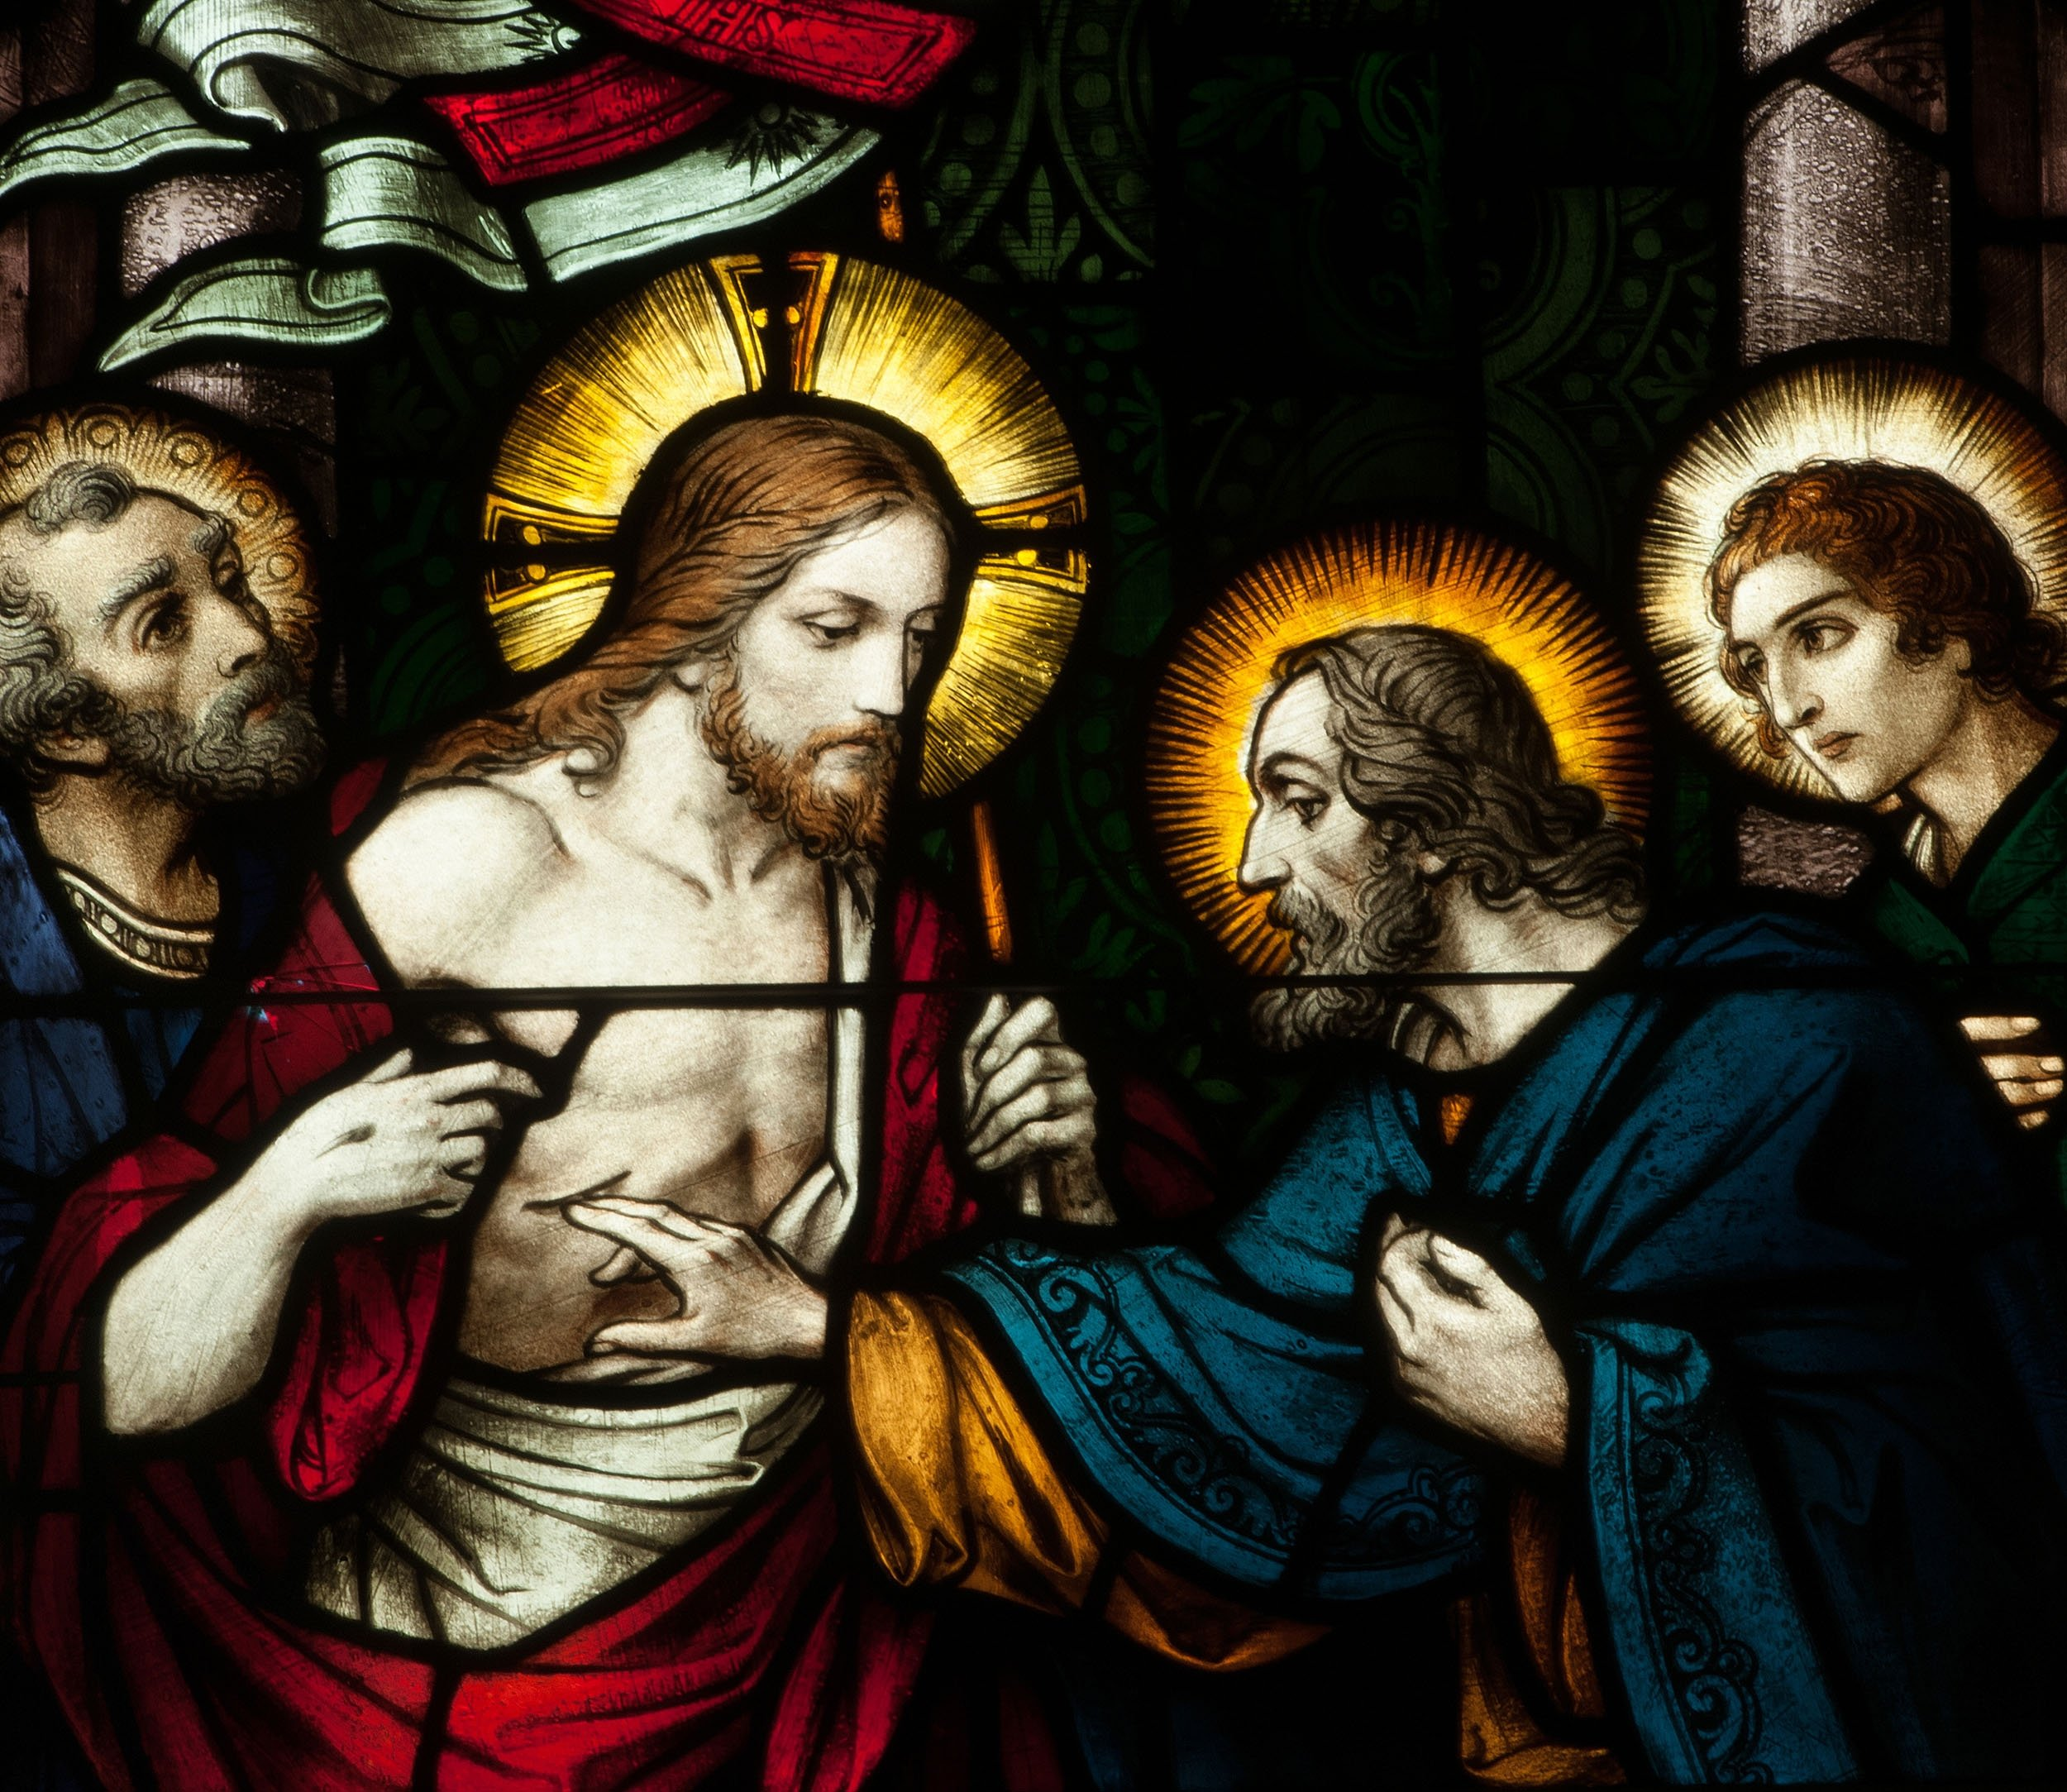 Stained glass window depicting the Apostle Thomas putting his hand in the side of Jesus,Connellsville,Pennsylvania, U.S., May 1, 2019. (Shutterstock Photo)